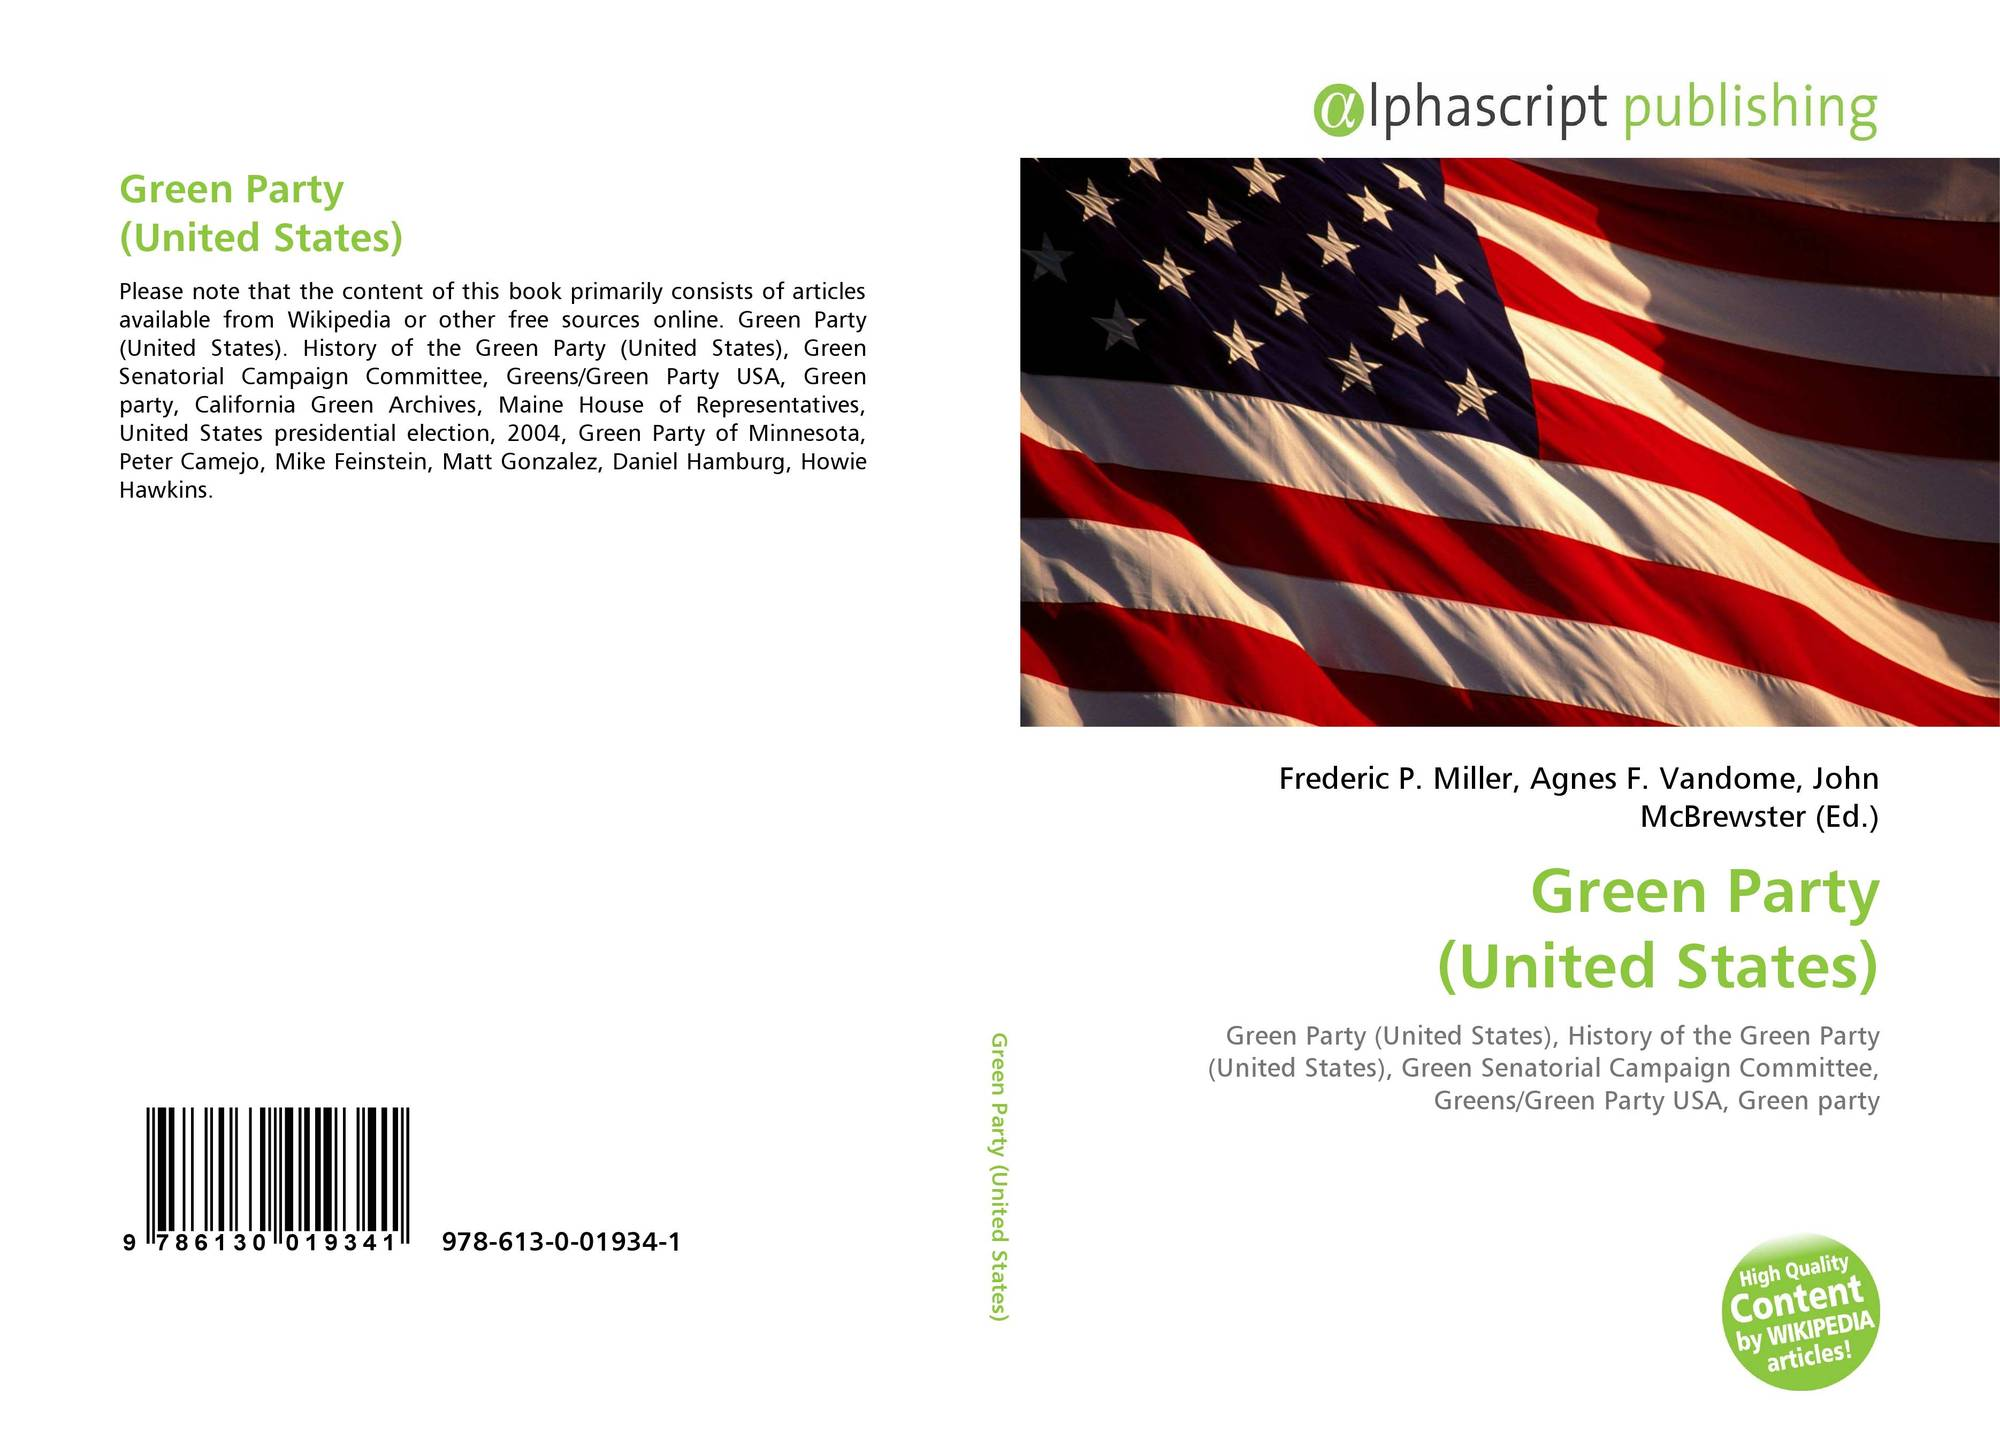 a history of the green party of the united states The green platform presents an eco-social analysis and vision for our country in contrast to the major political parties that create their platforms through back-room deals by insiders and.